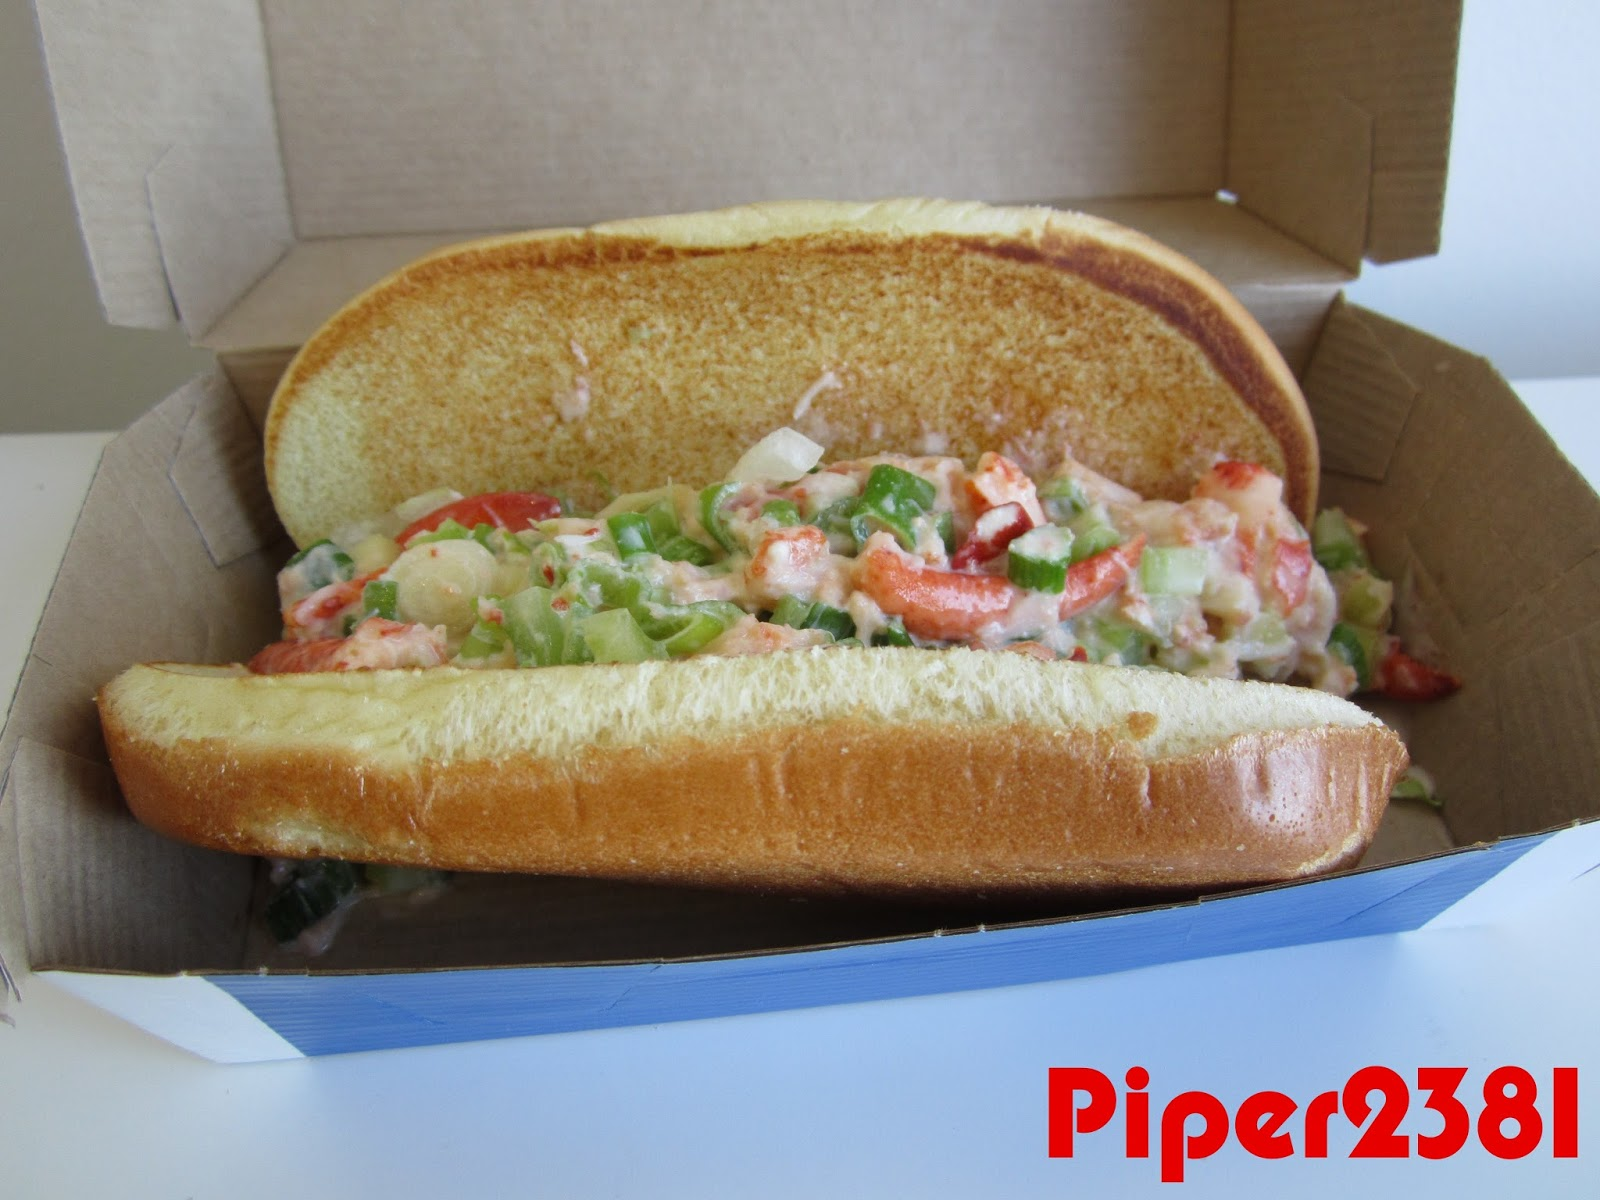 0efe7c6c508 For a limited time McDonalds in Toronto is offering the McLobster. The  sandwich features real pieces of lobster with mayo